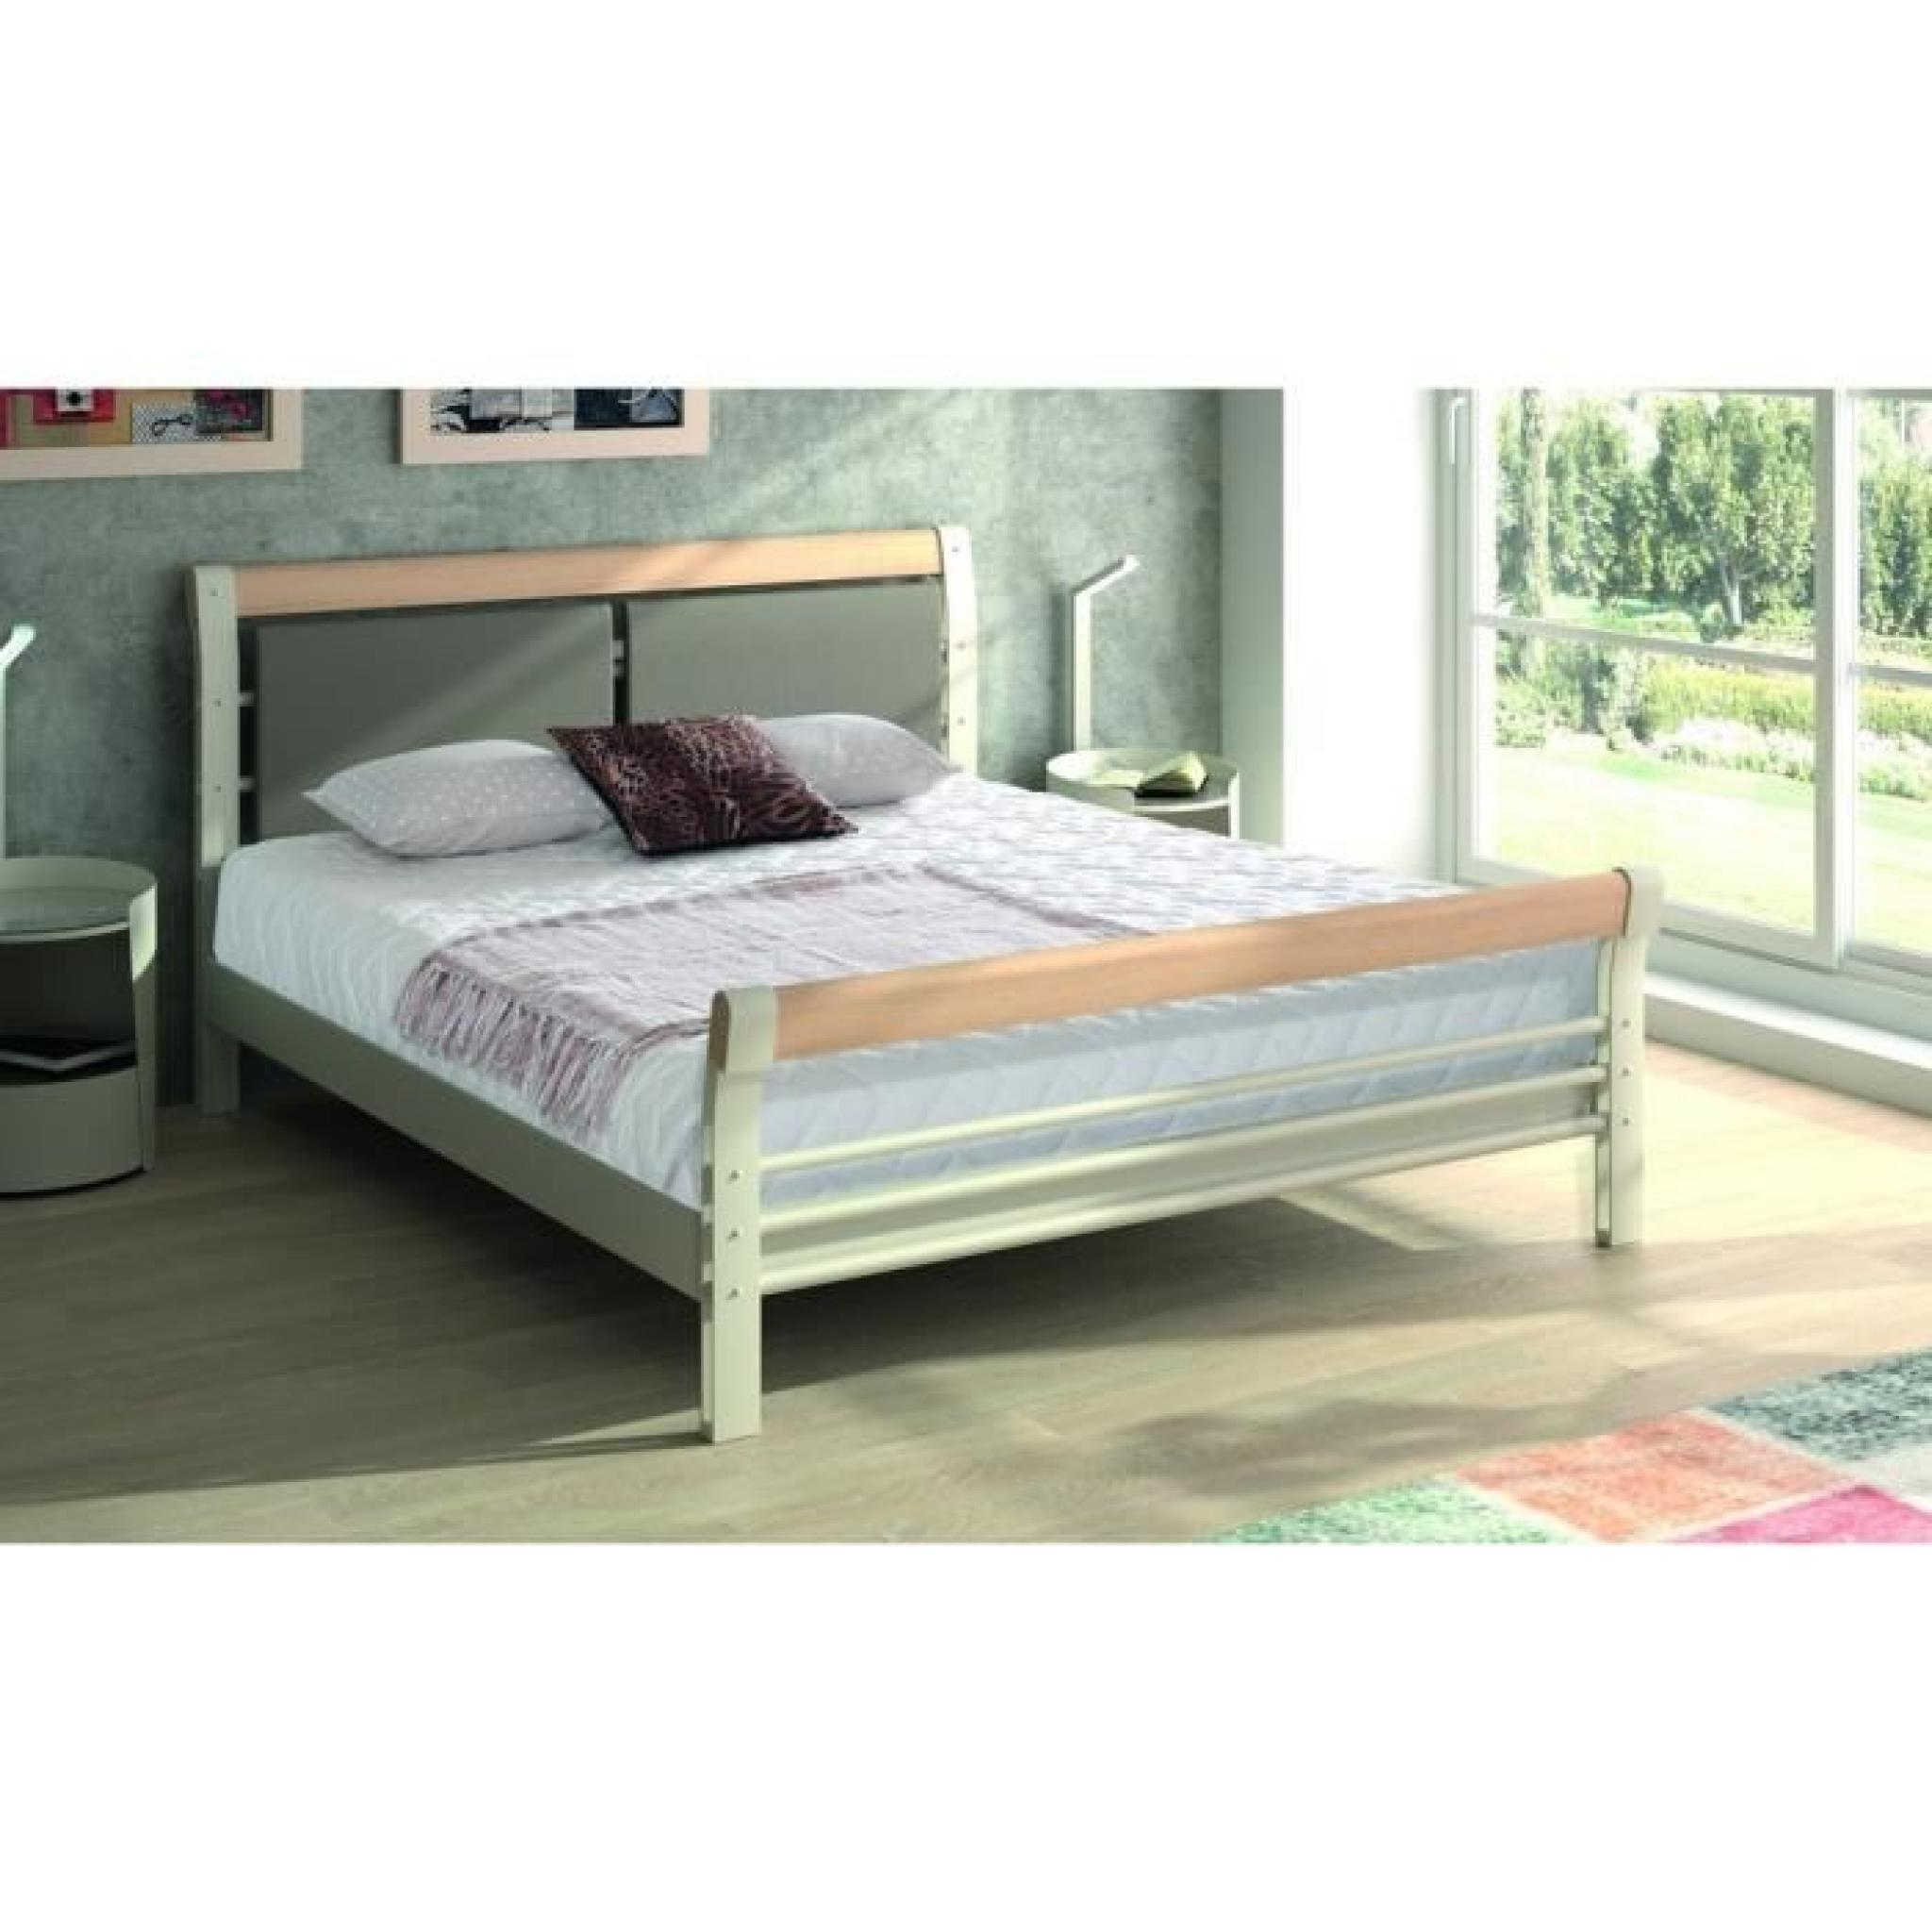 lit adulte m tal 160x200 bilbao ferplay blanc achat. Black Bedroom Furniture Sets. Home Design Ideas